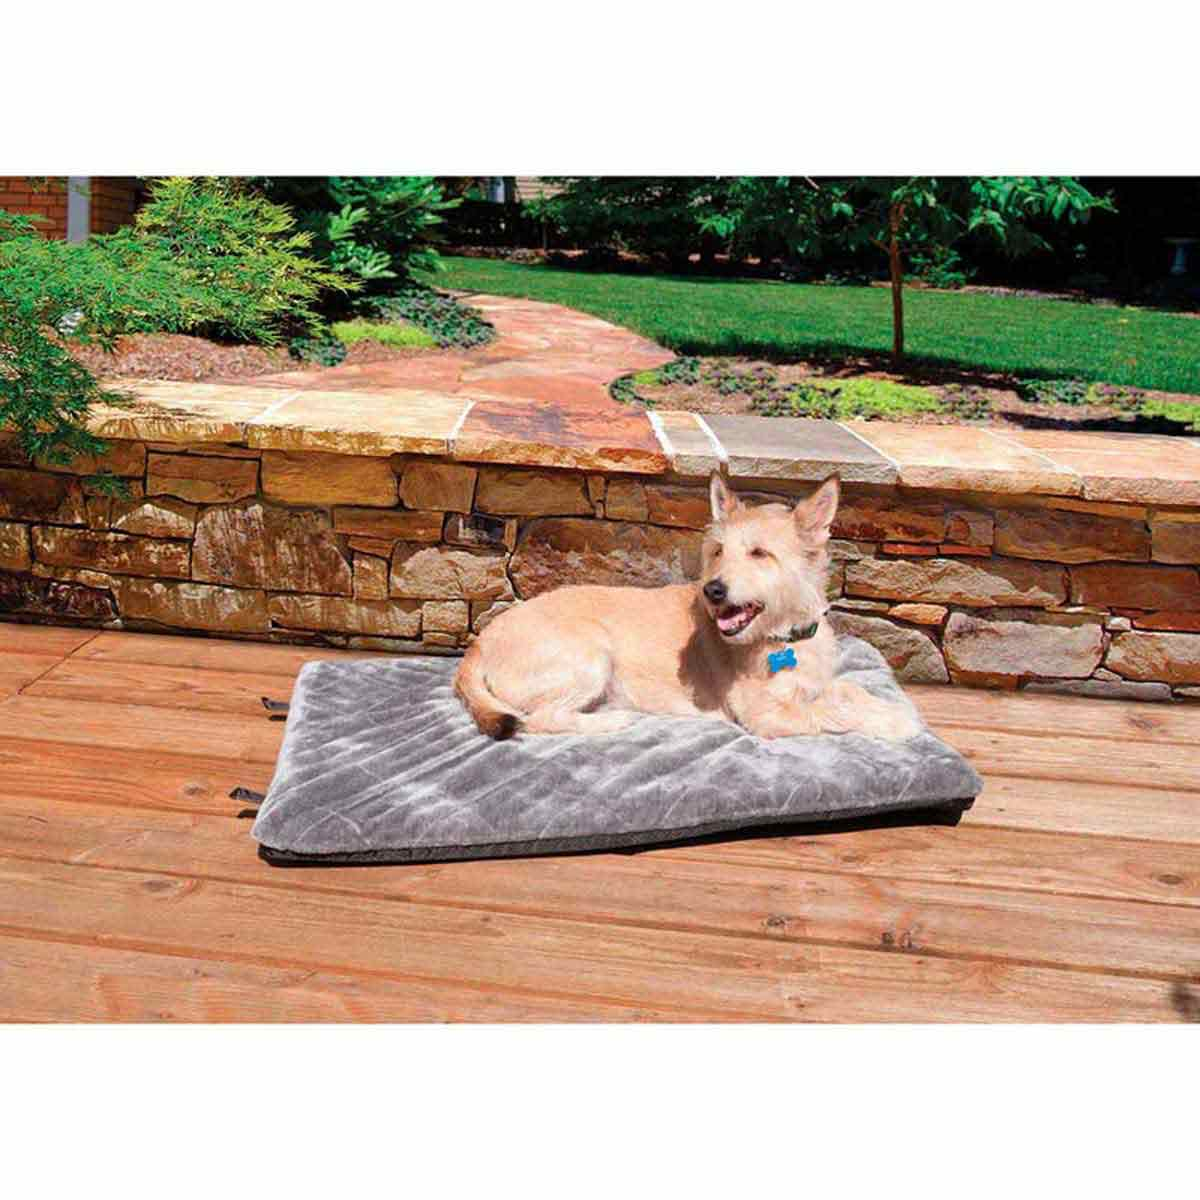 Furhaven Nap Crate Orthopedic Pet Mats Silver - 18 inches by 29 inches by 2 inches